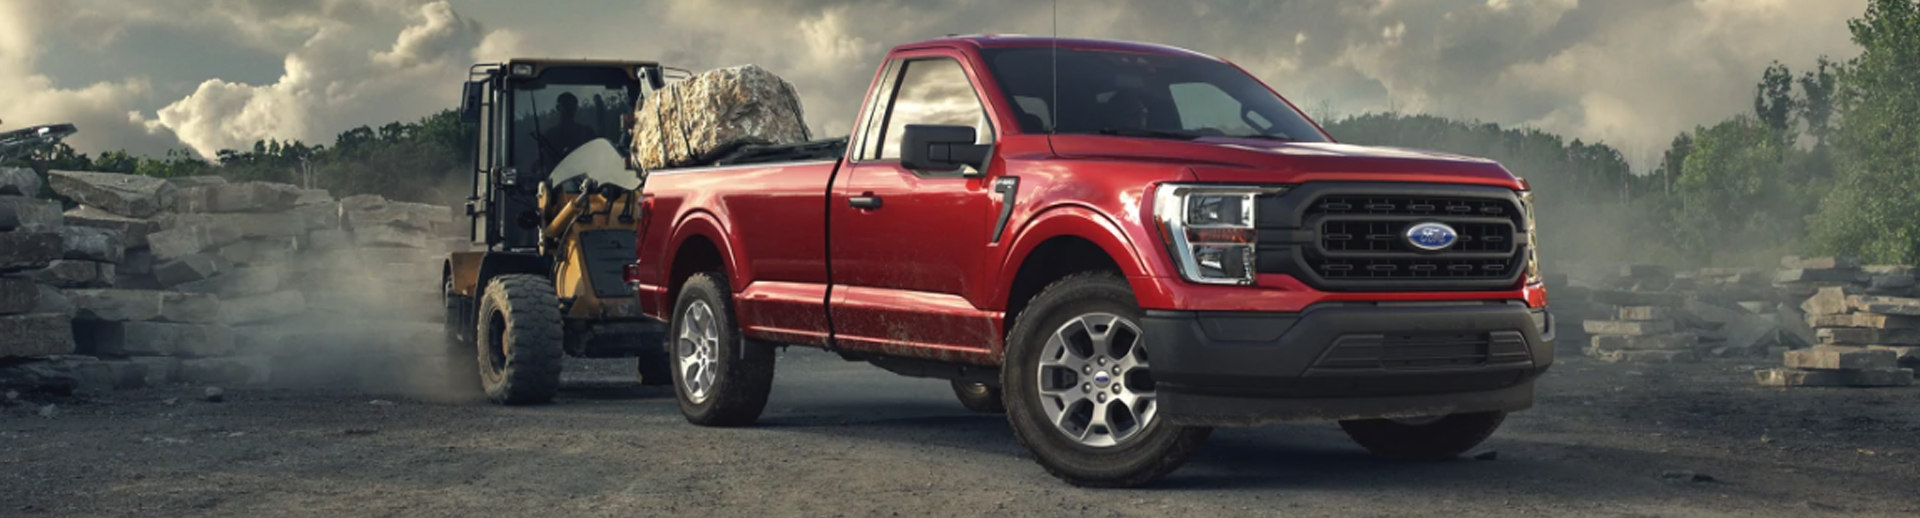 2021 Ford F-150 Lifestyle Photo